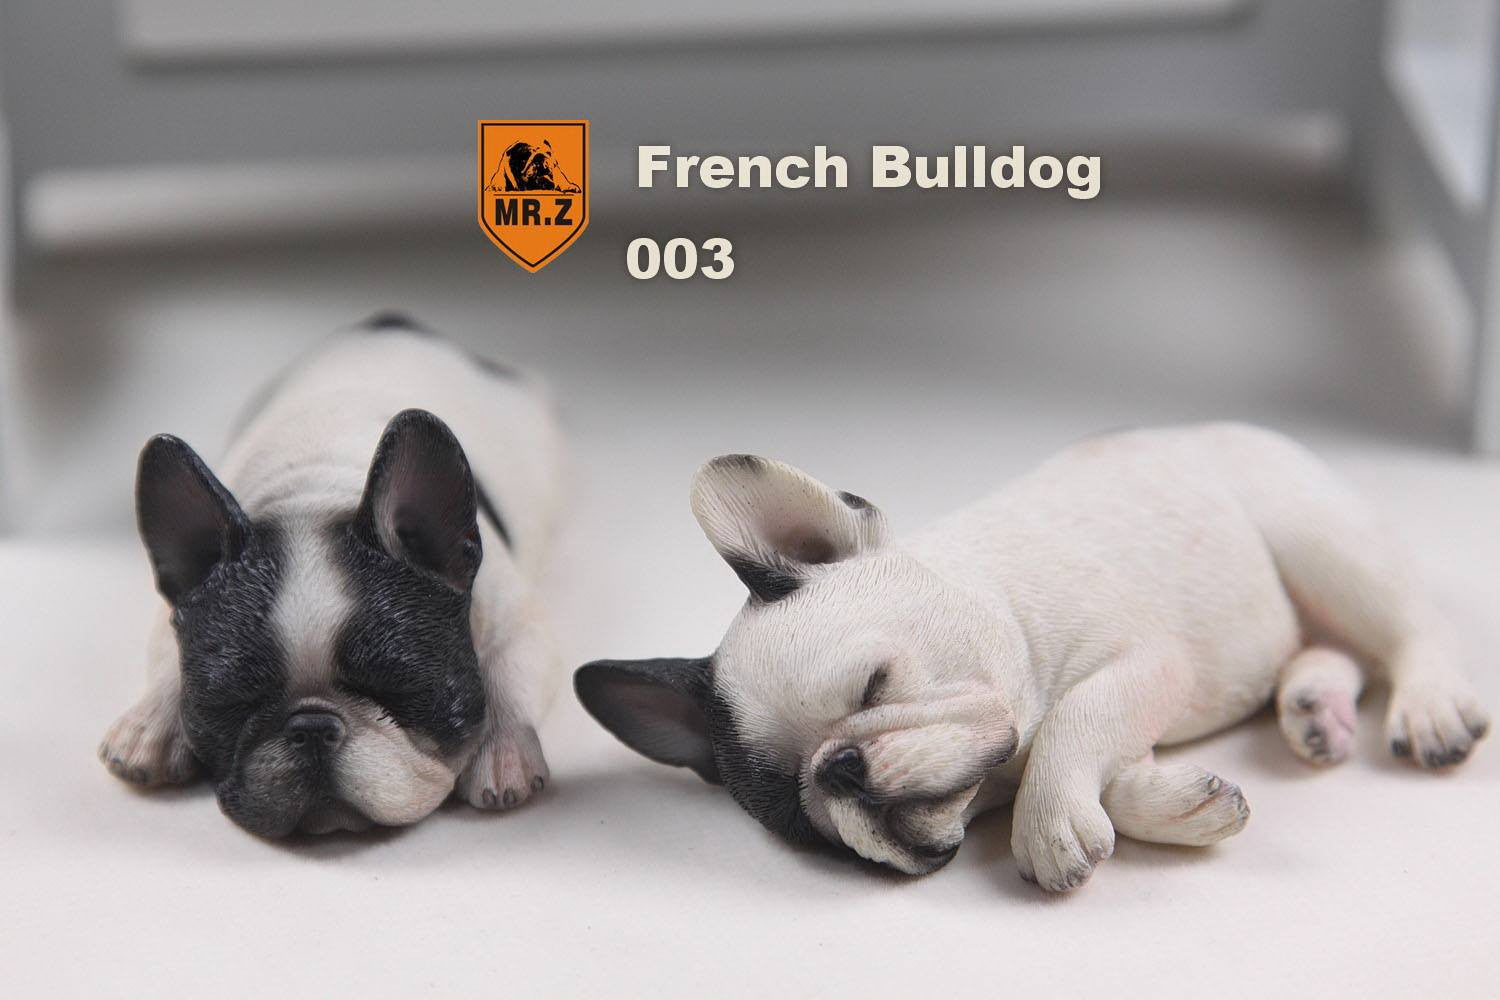 MR.Z - Real Animal Series No.9 - 1/6th Scale French Bulldog (Sleep Mode) 001-005 - Marvelous Toys - 13